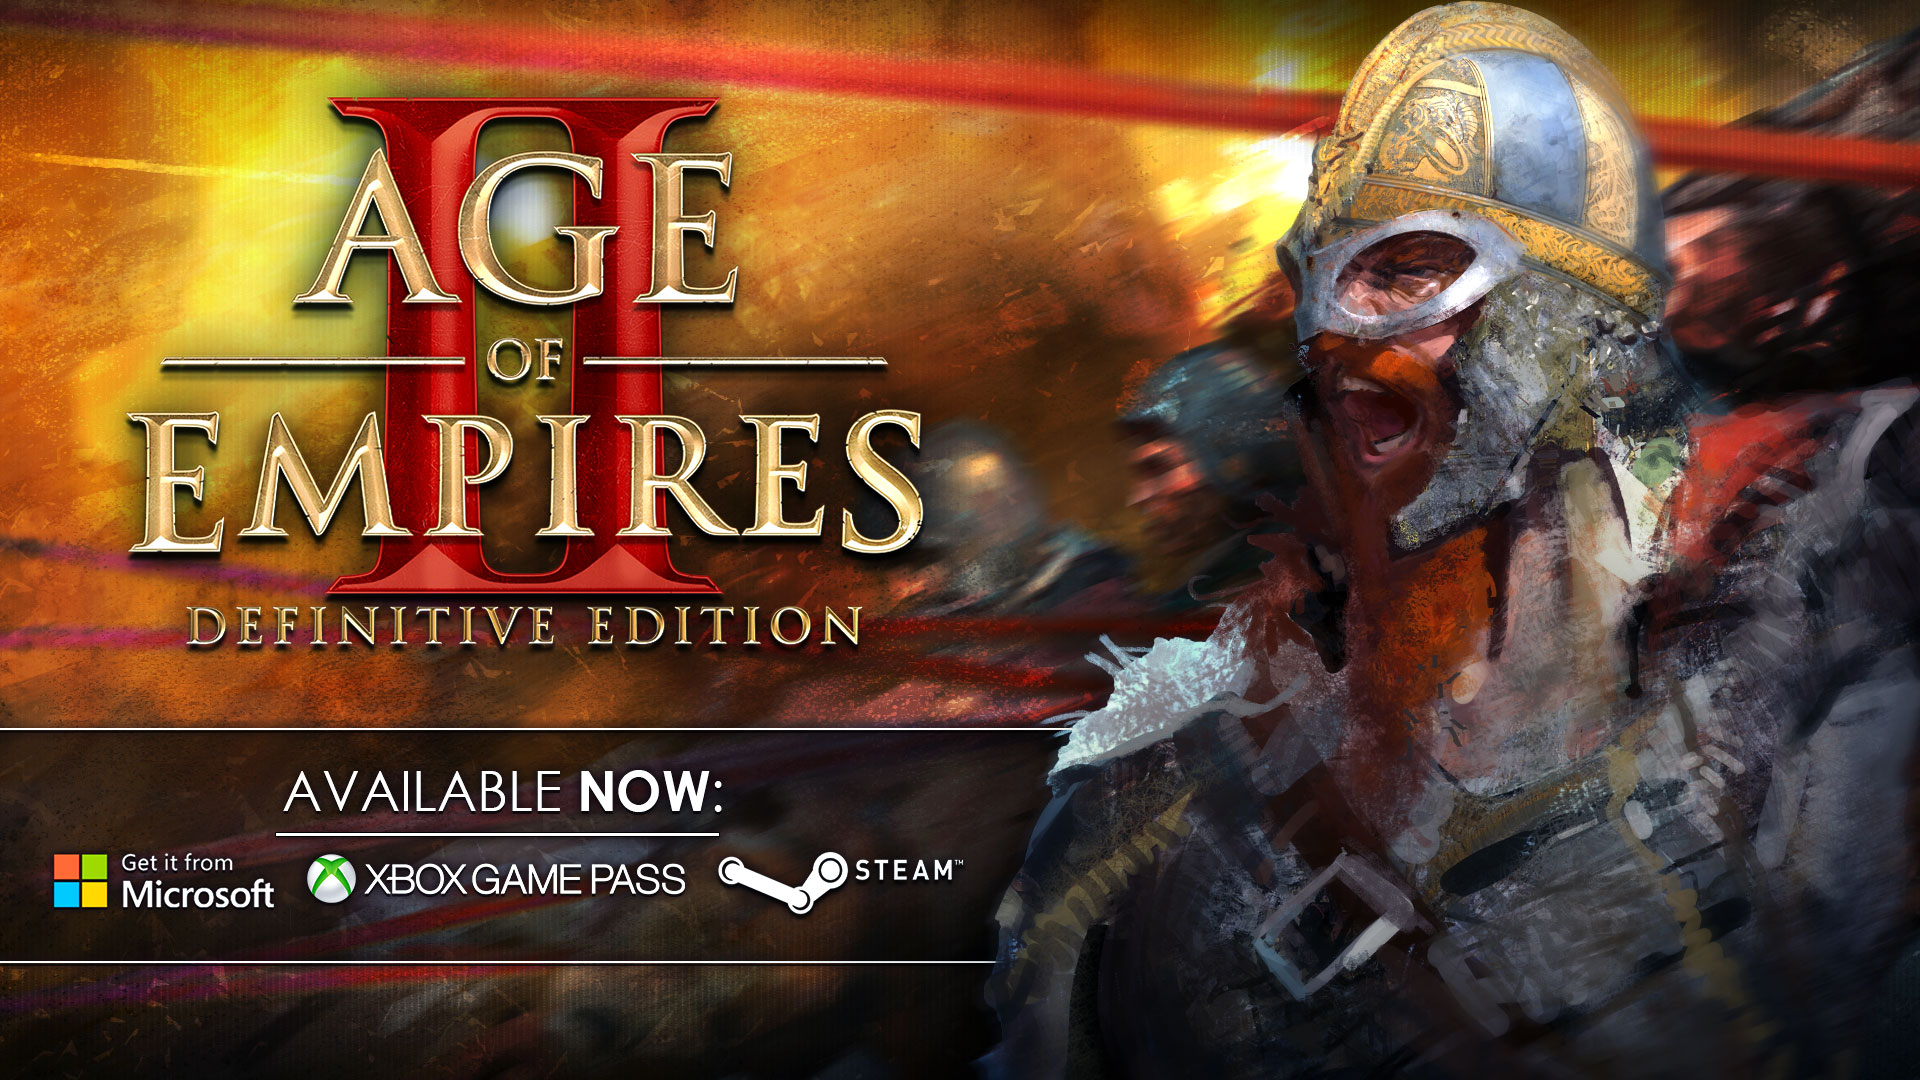 Age of Empires II: Definitive Edition released!